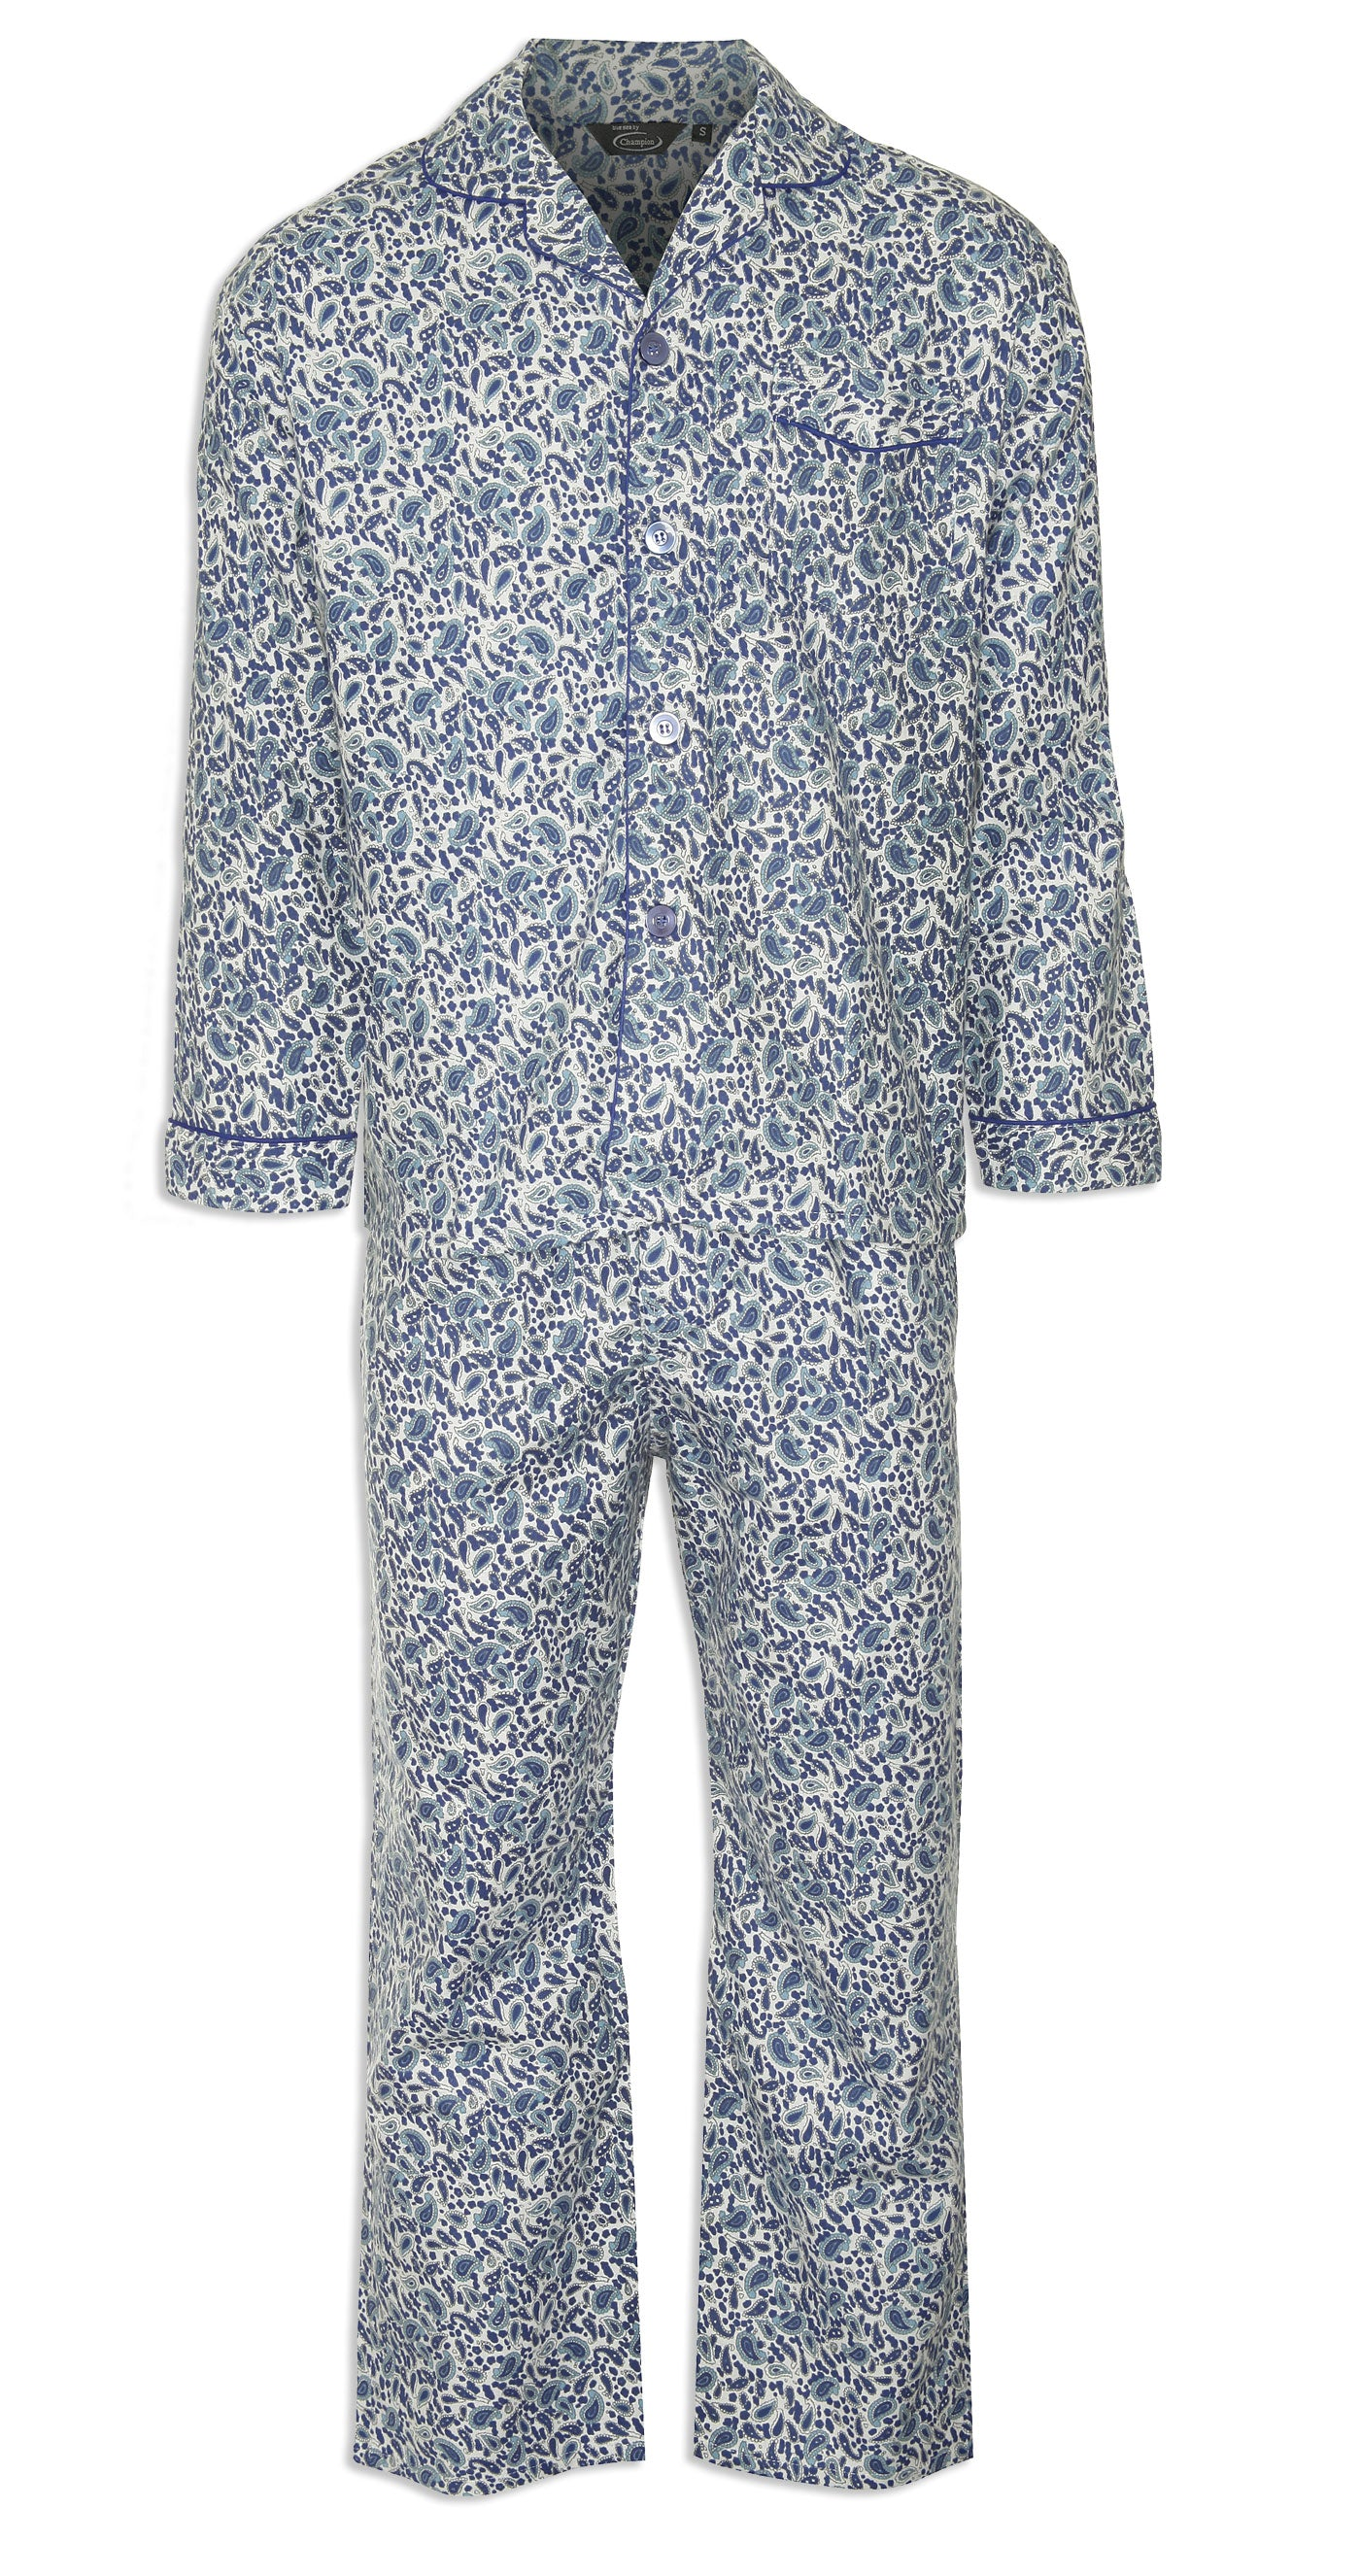 d77754fa05fdc Champion Paisley Pyjamas 100% Cotton – Hollands Country Clothing